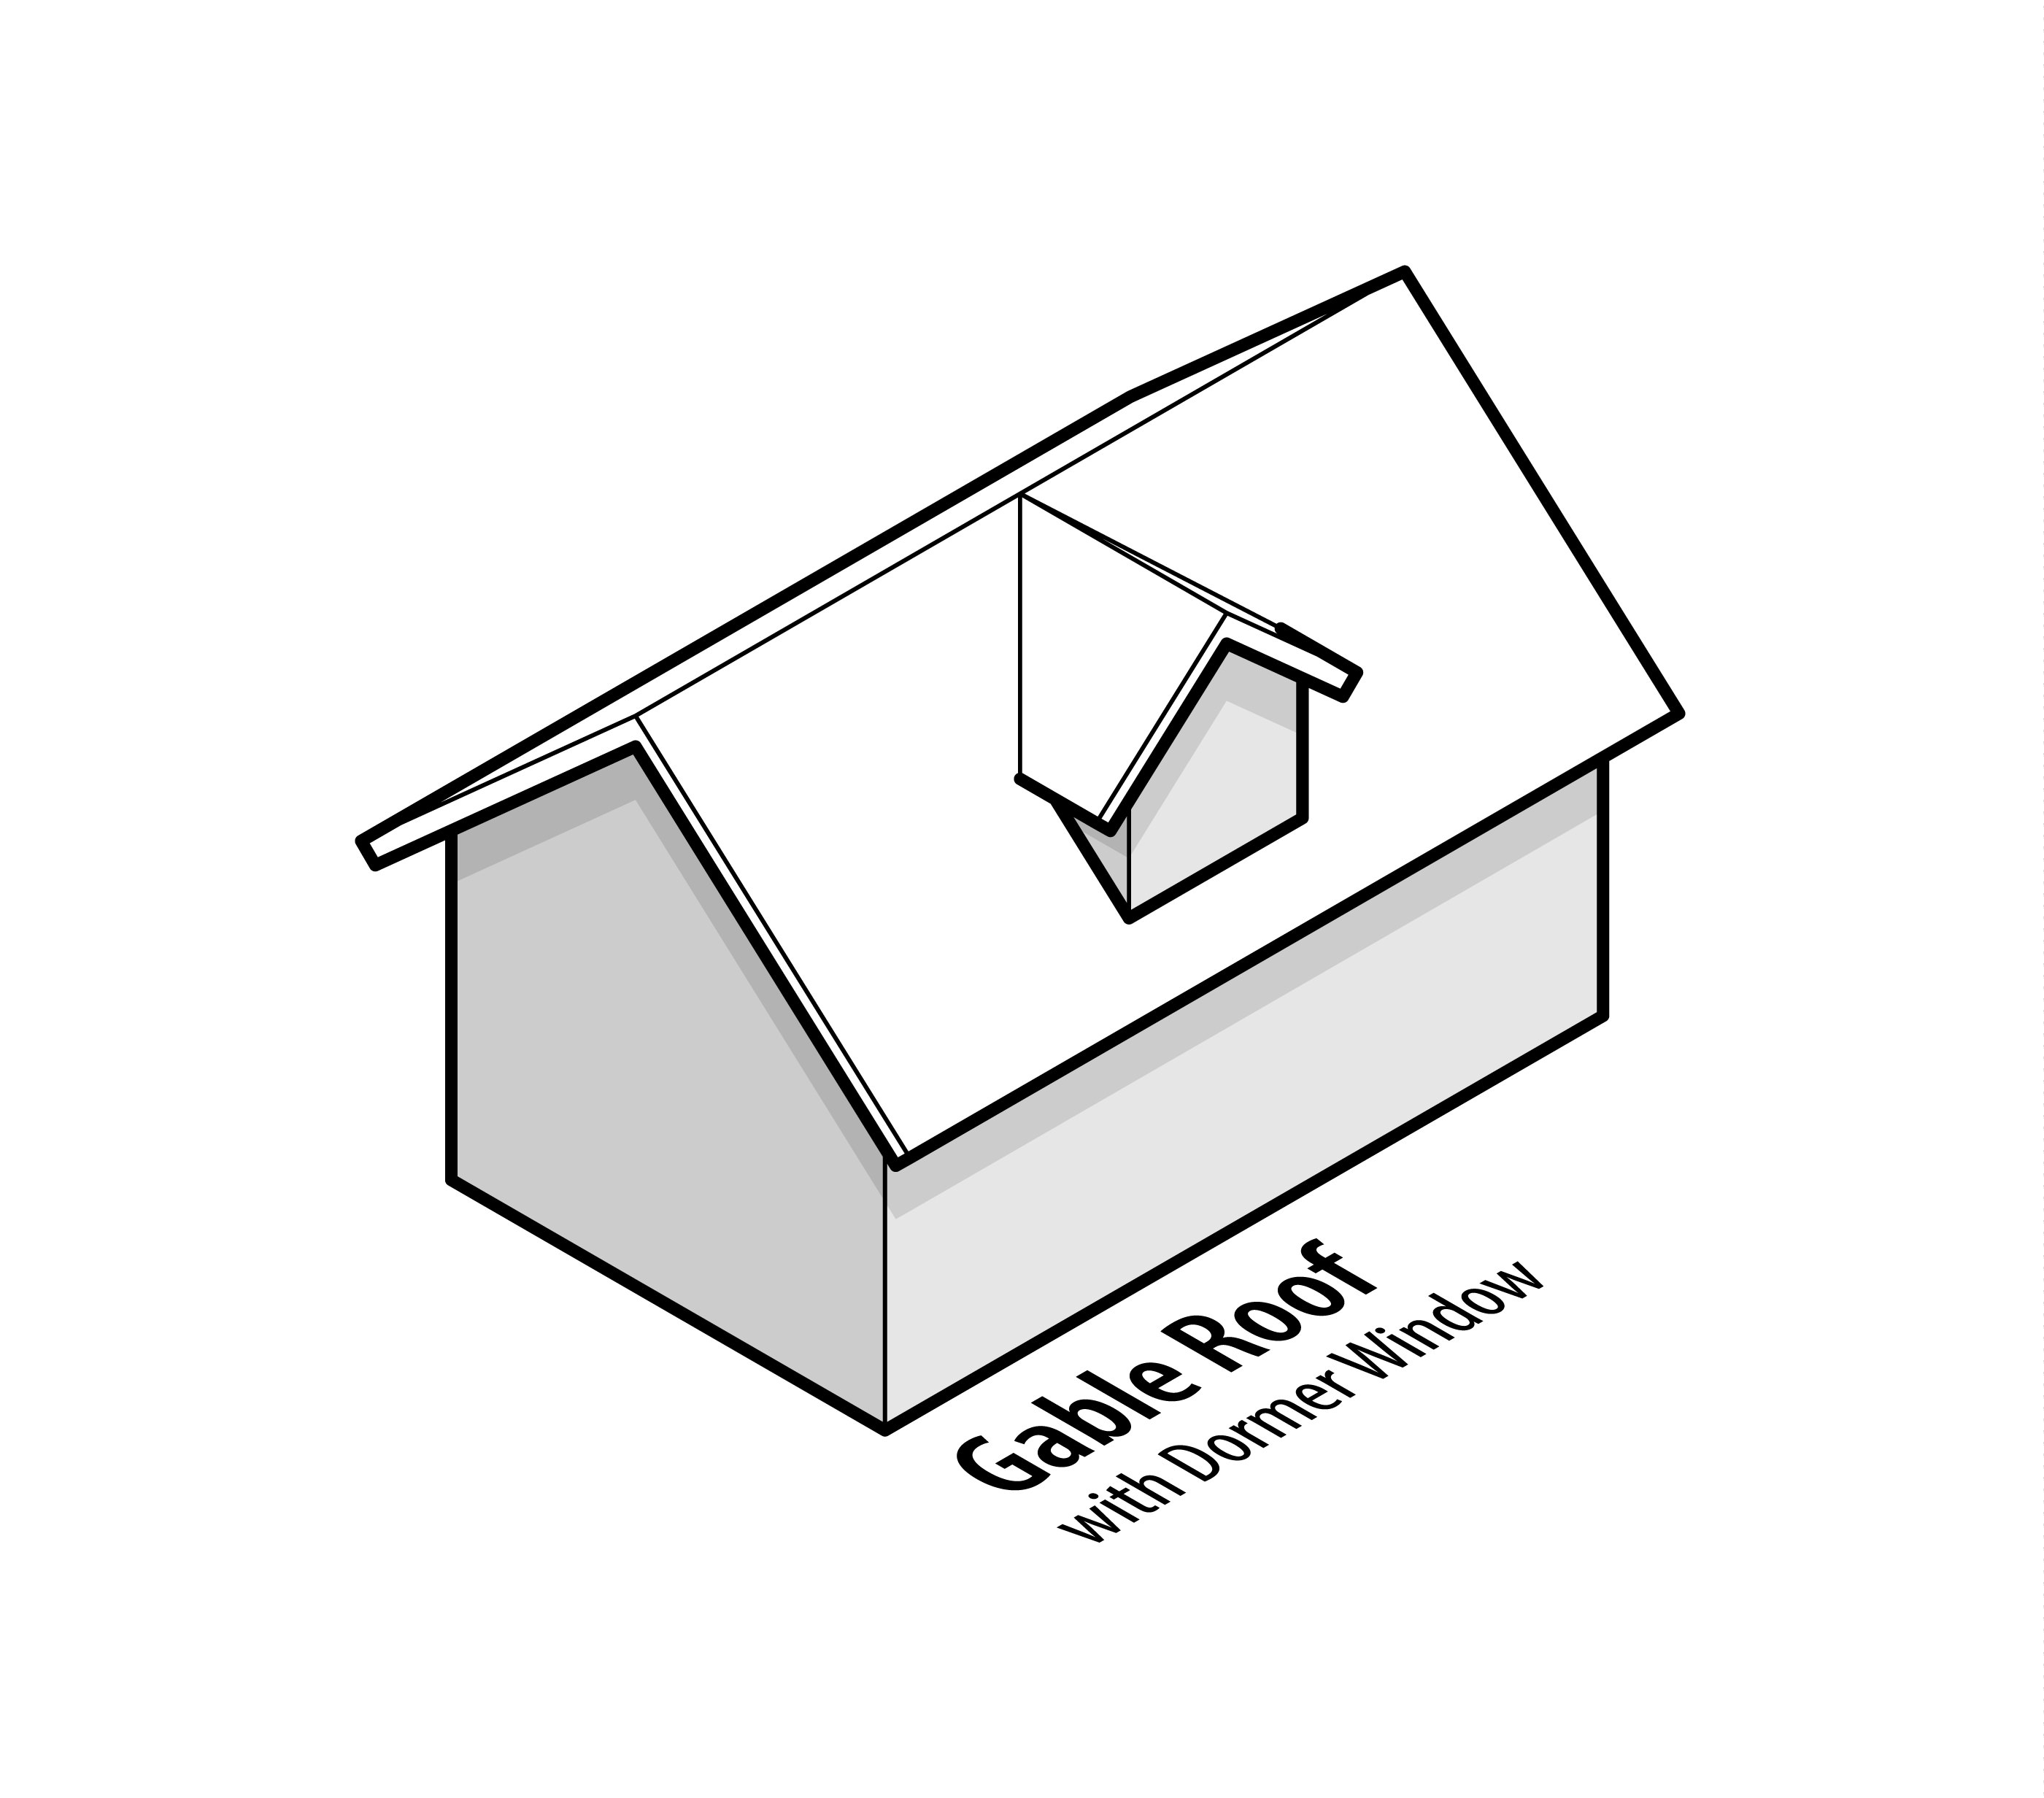 Picture Of A Gable Roof: 15 Types Of Roofs For Houses (with Illustrations